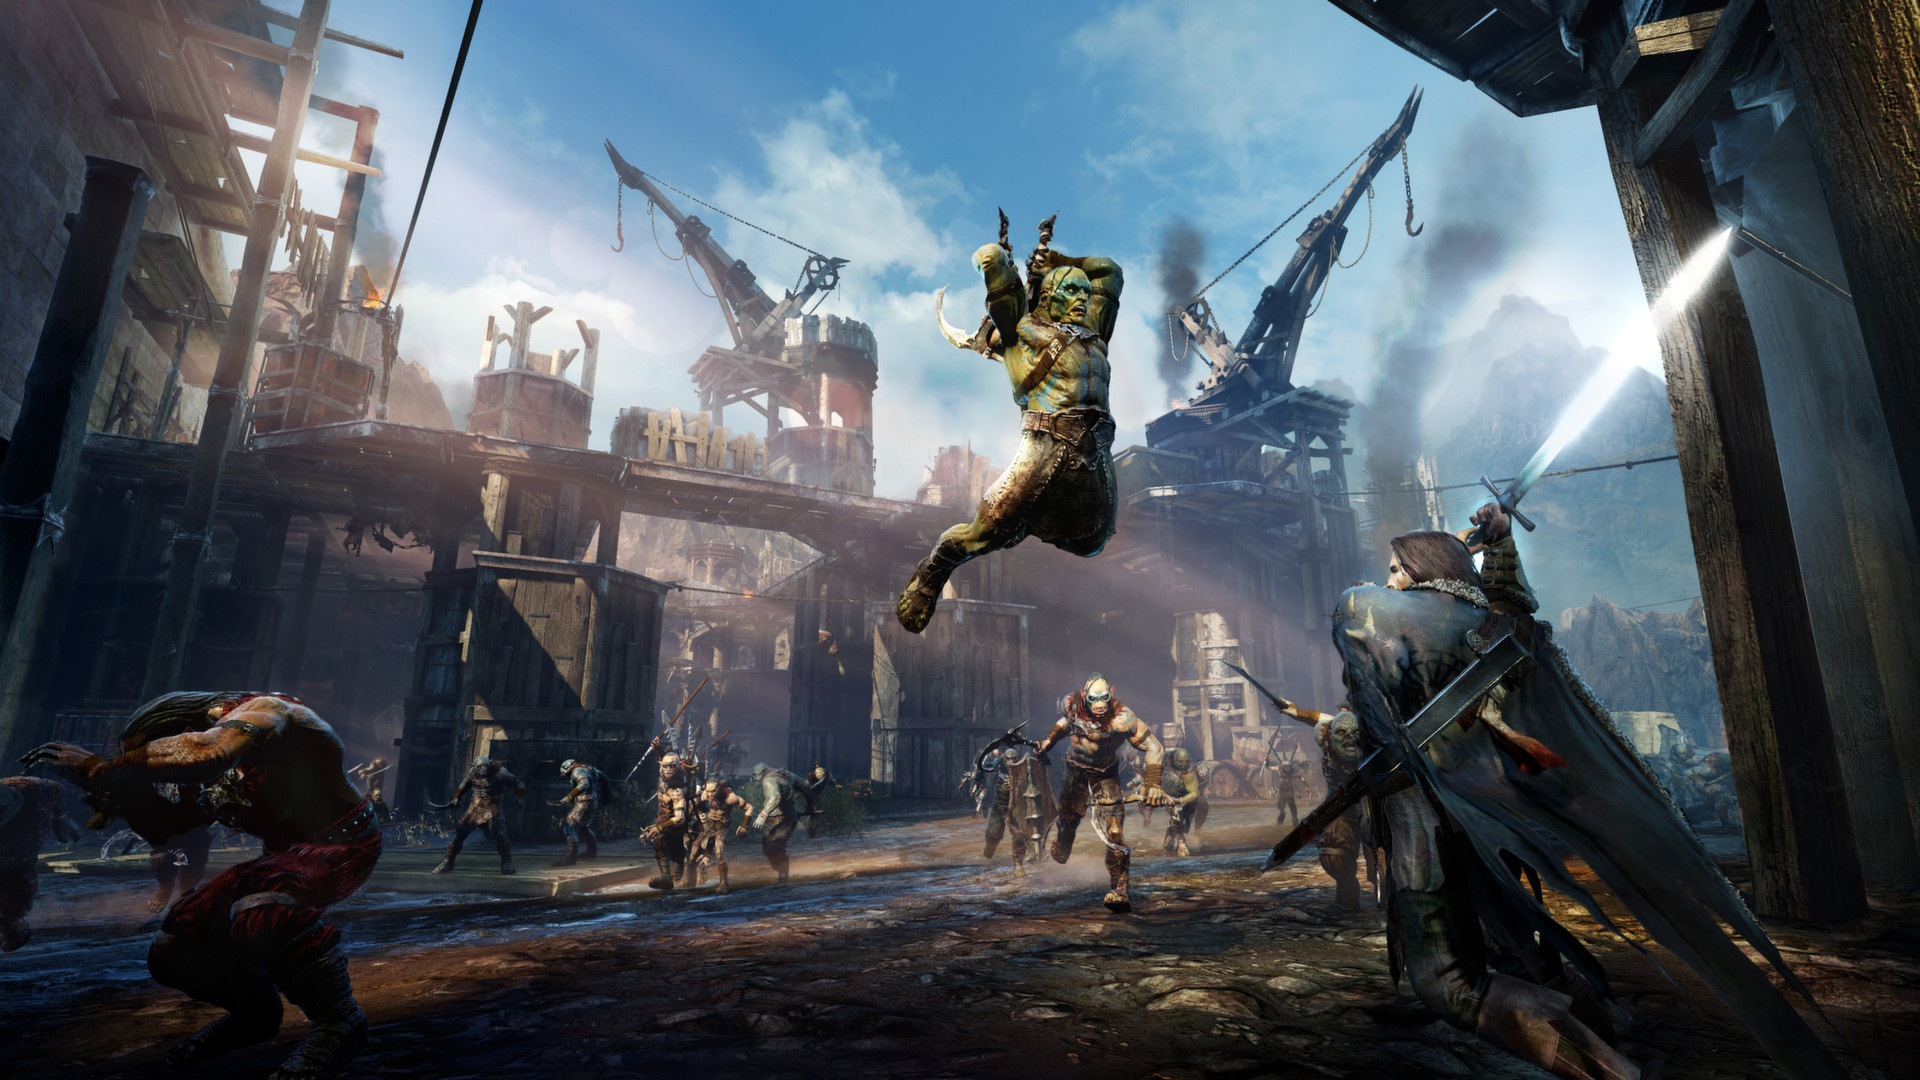 Shadow of Mordor's nemesis system now successfully patented by WB Games